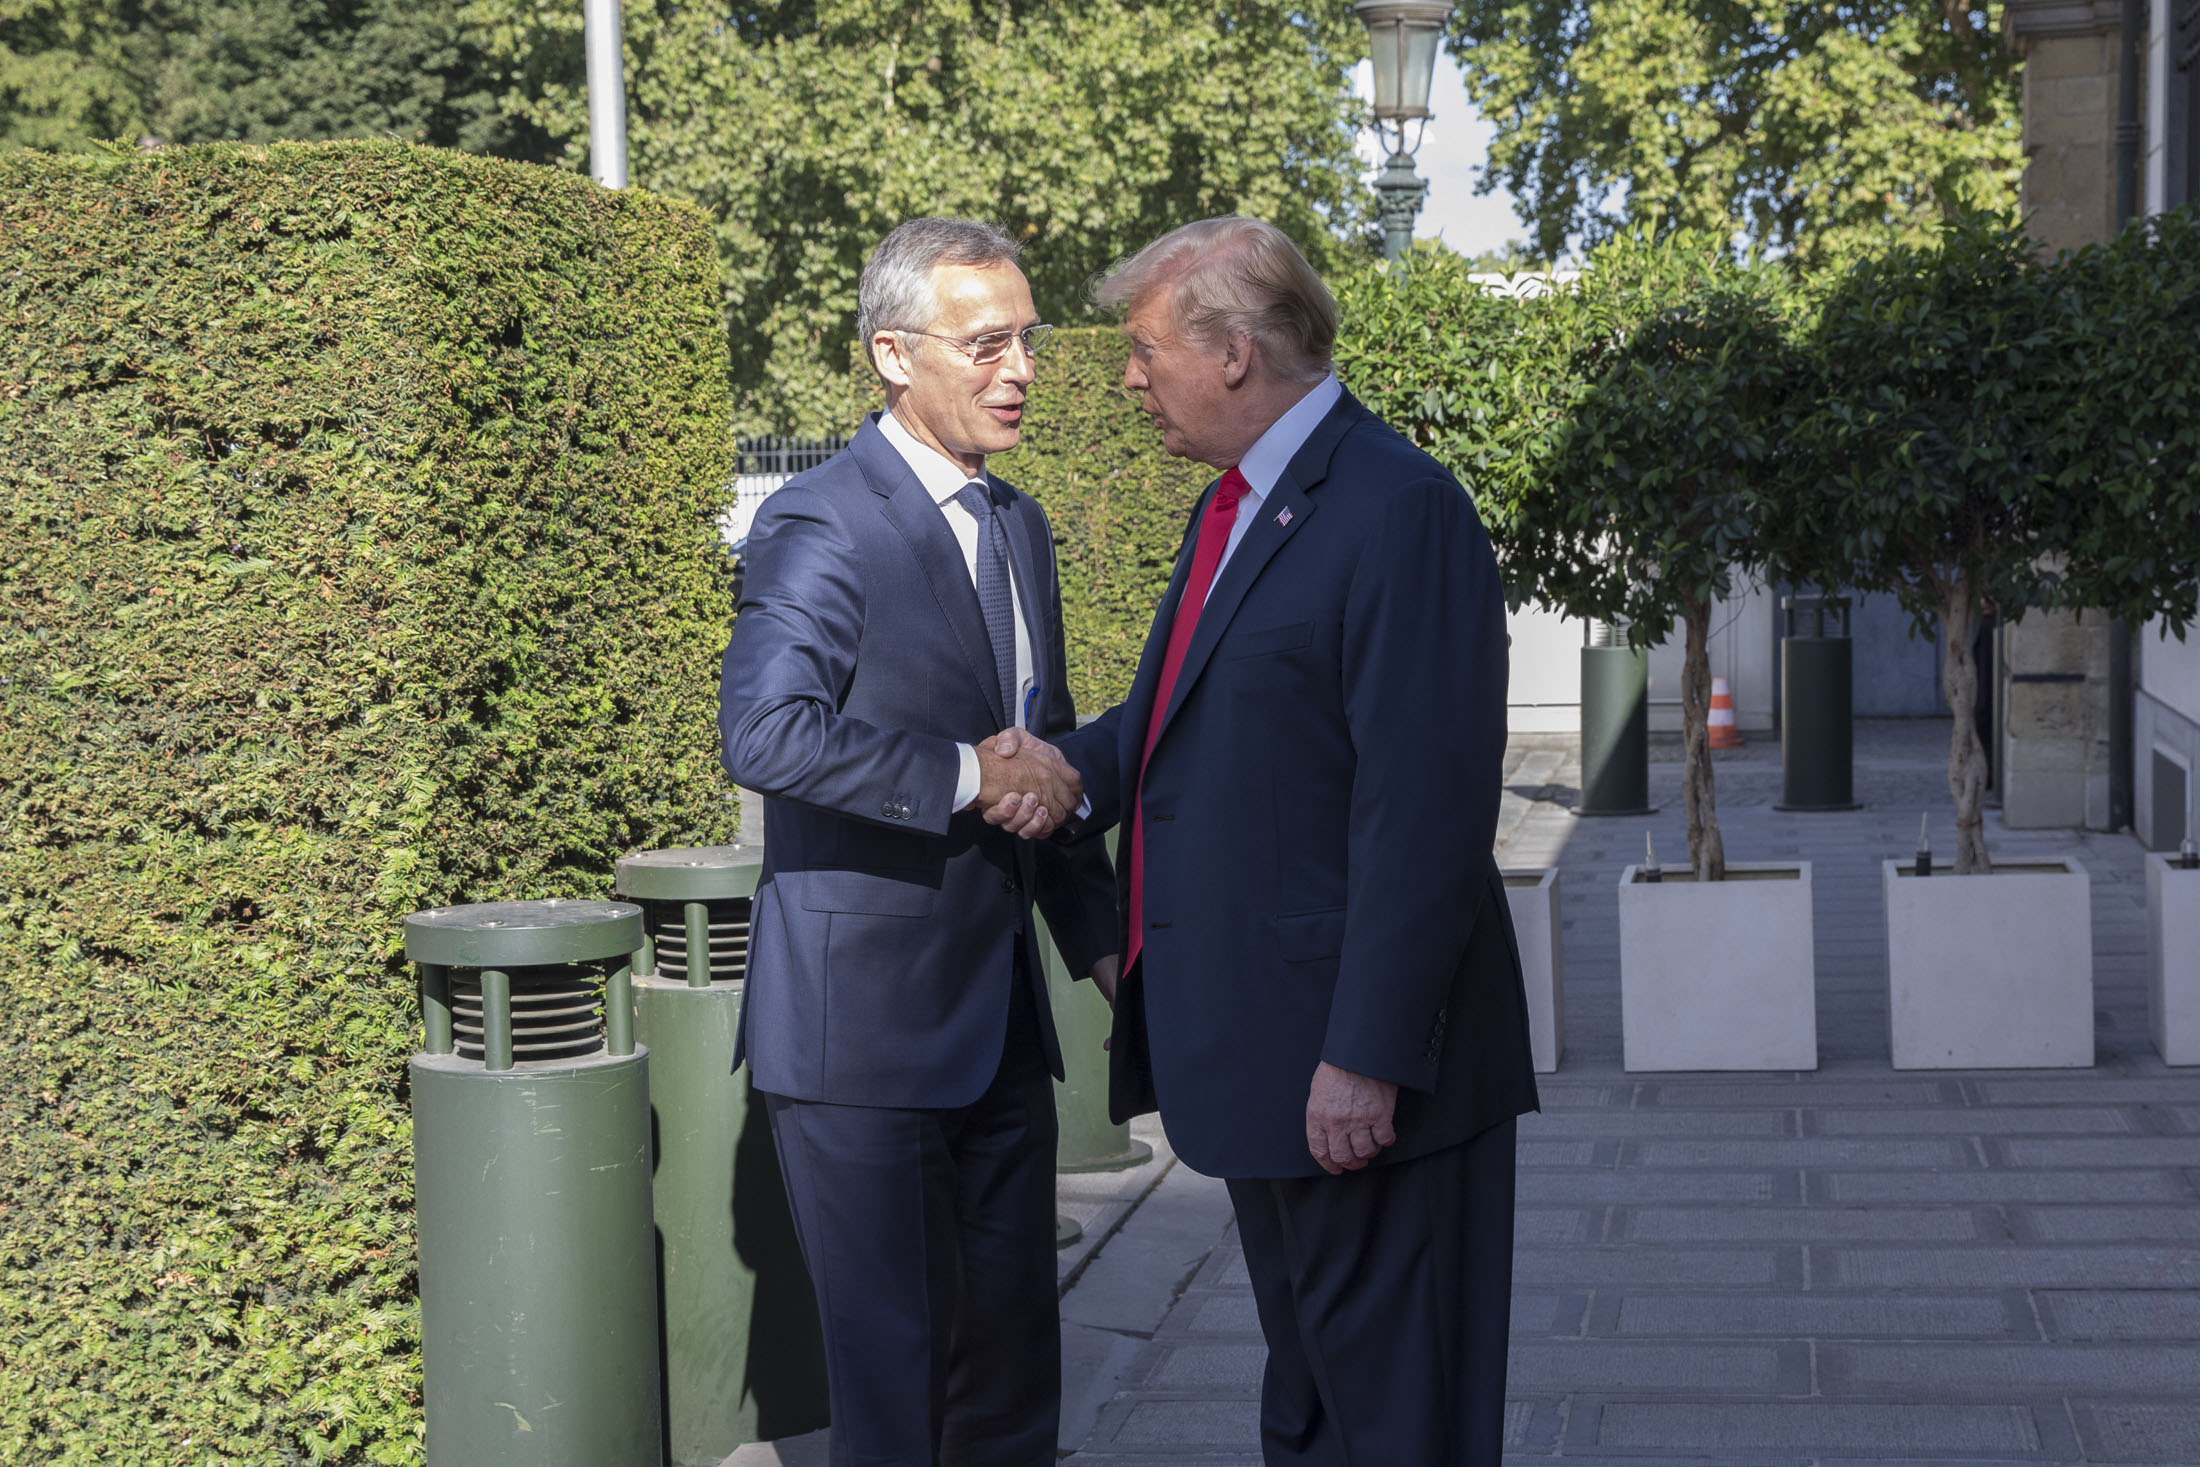 US President Donald Trump with NATO's General Secretary at the NATO Summit in Brussels, 2018.